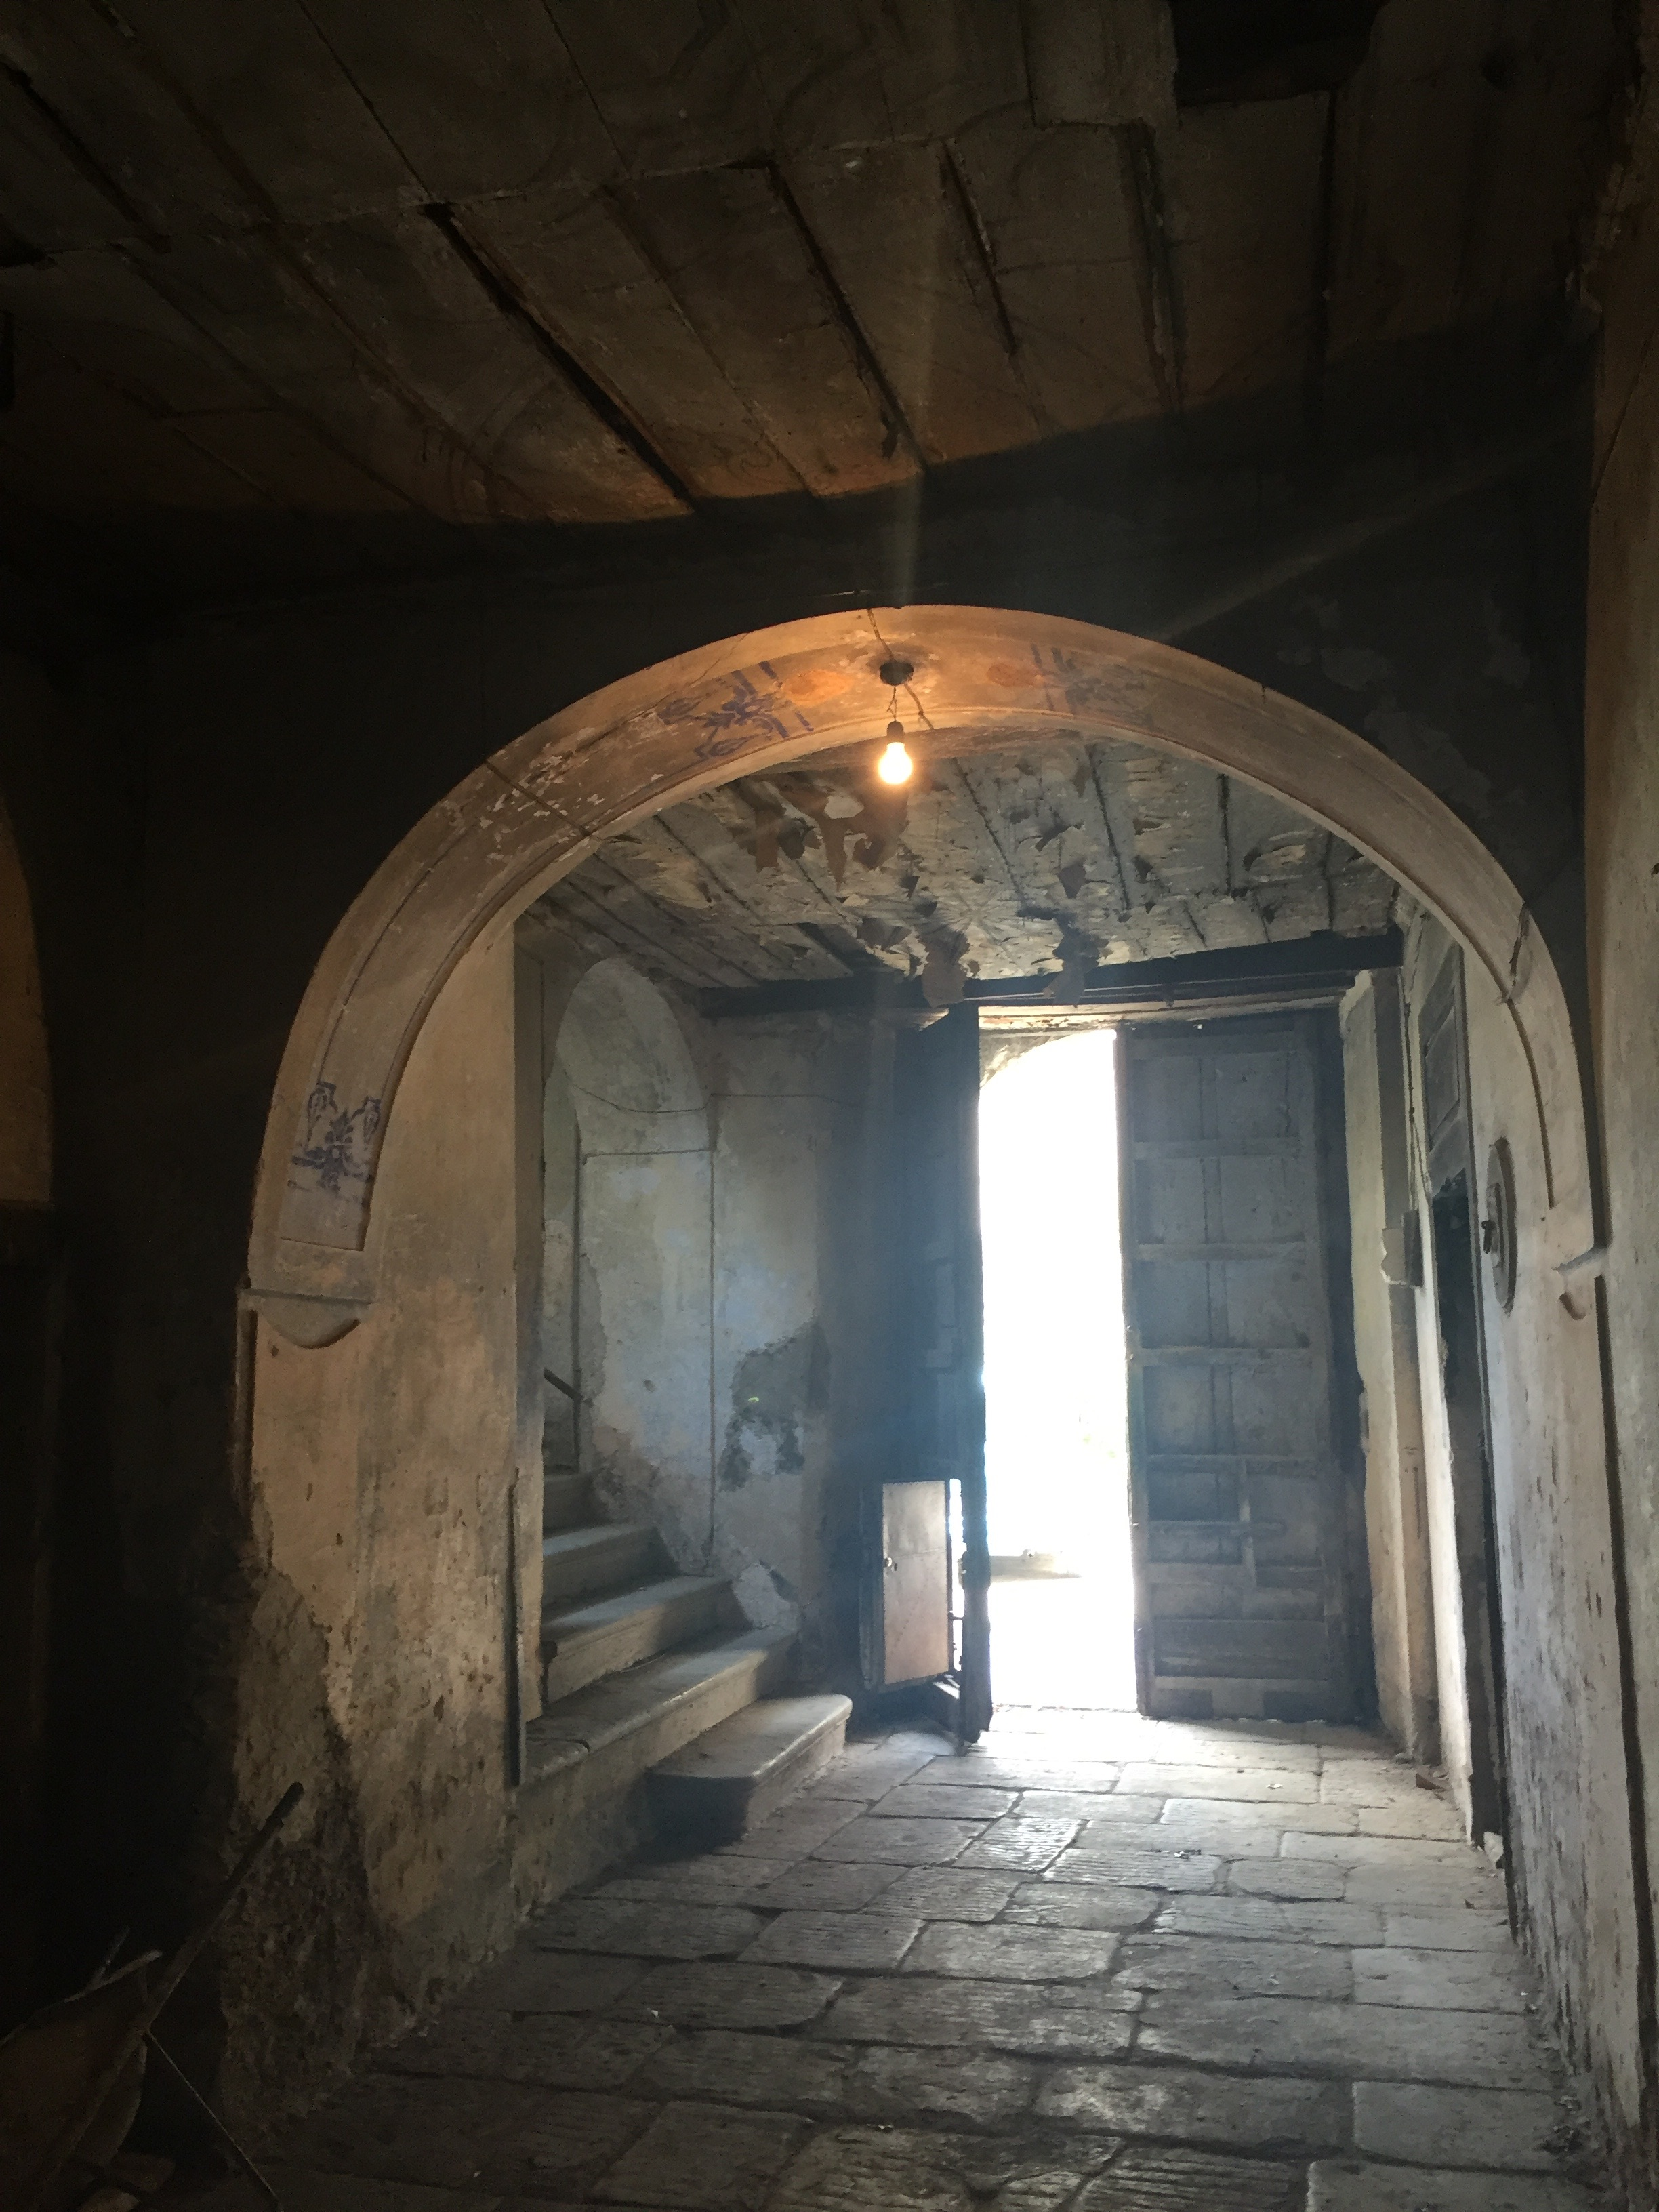 Inside the entrance of the abandoned Palazzo Bellelli, Capaccio.